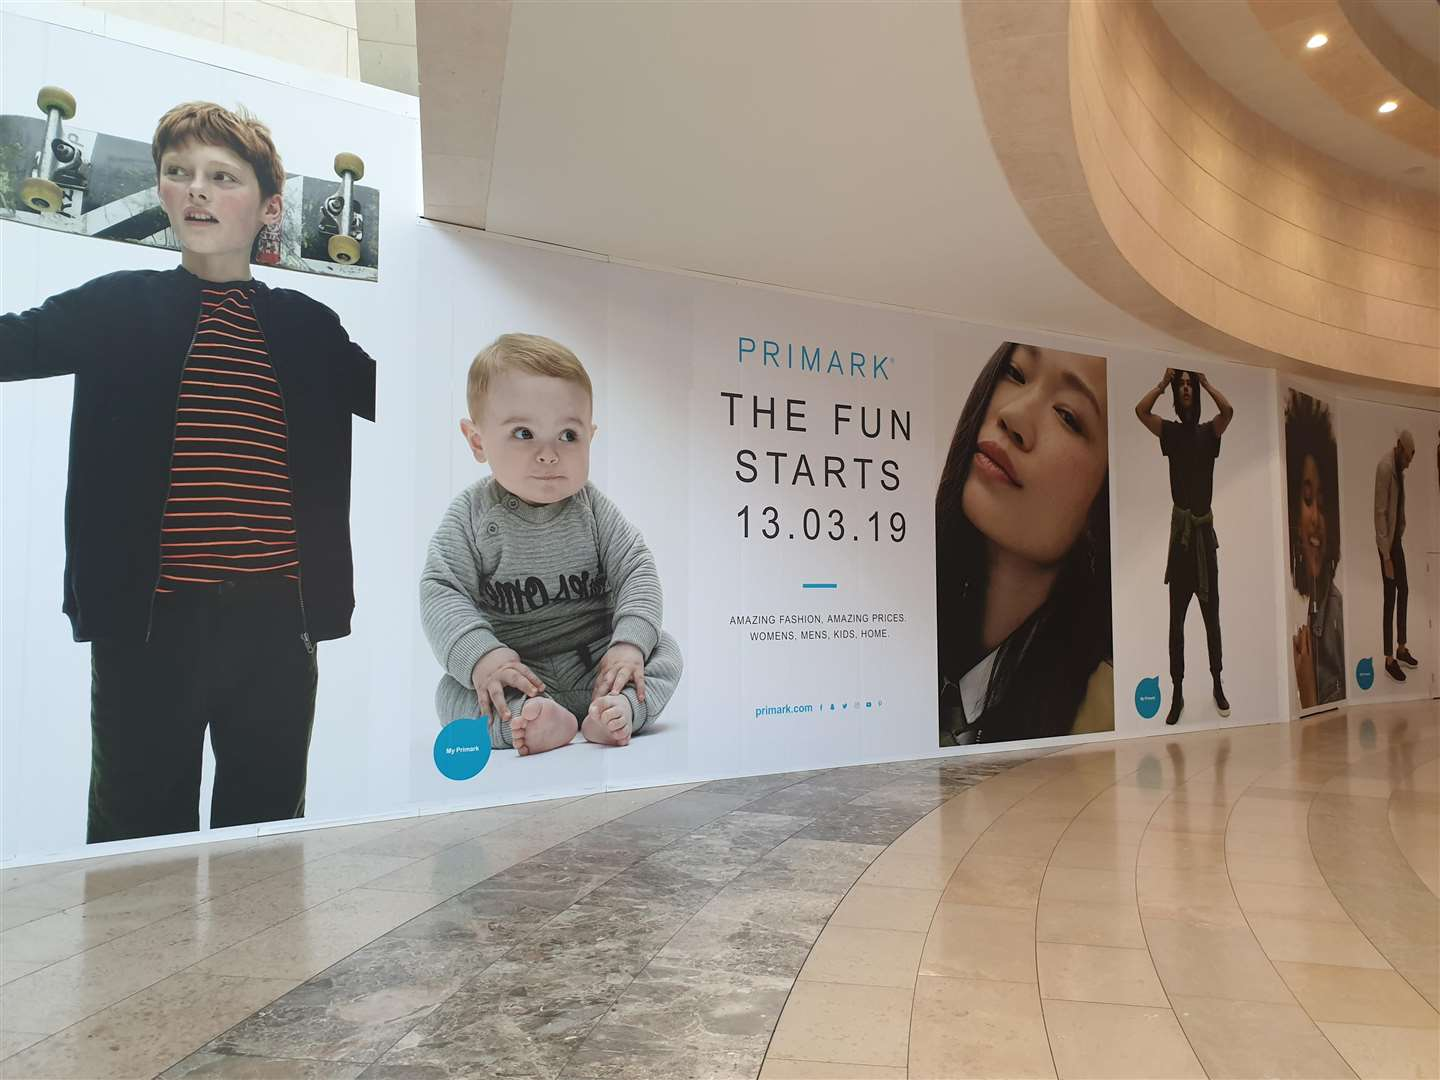 Primark is set to open in Bluewater on Wednesday, March 13